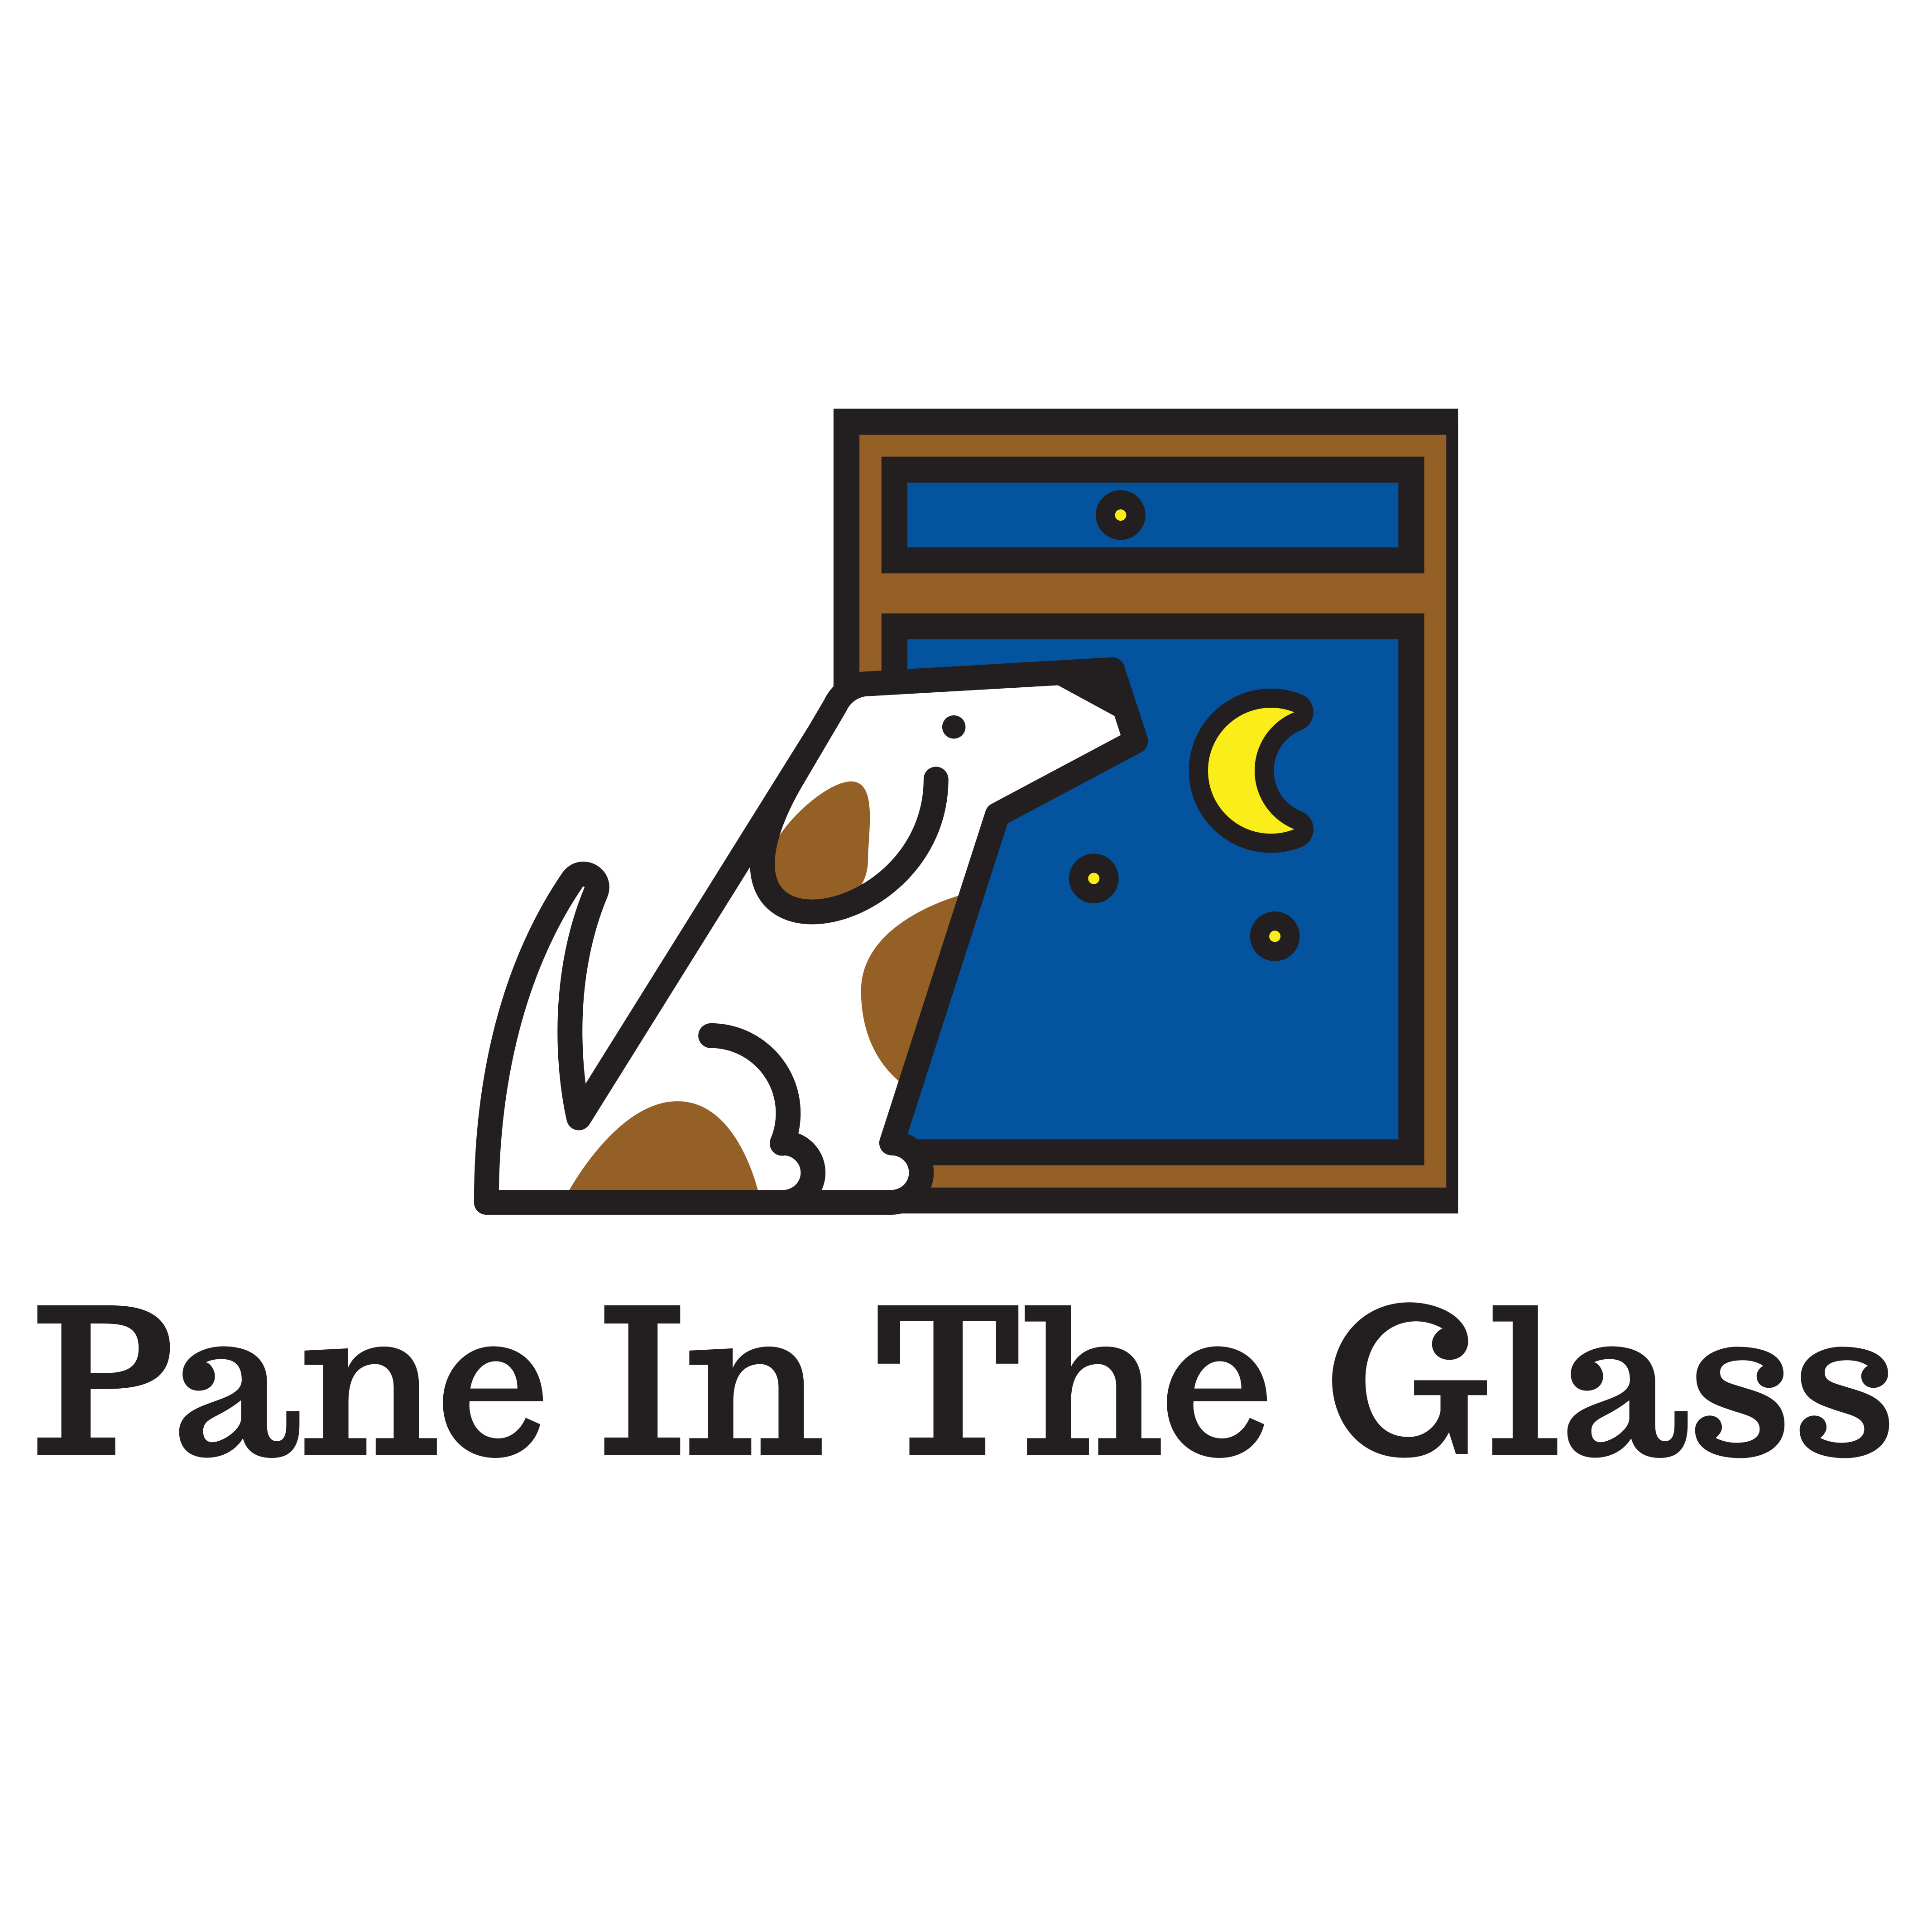 pane in the glass - Chesterfield, VA 23832 - (804)675-4974 | ShowMeLocal.com